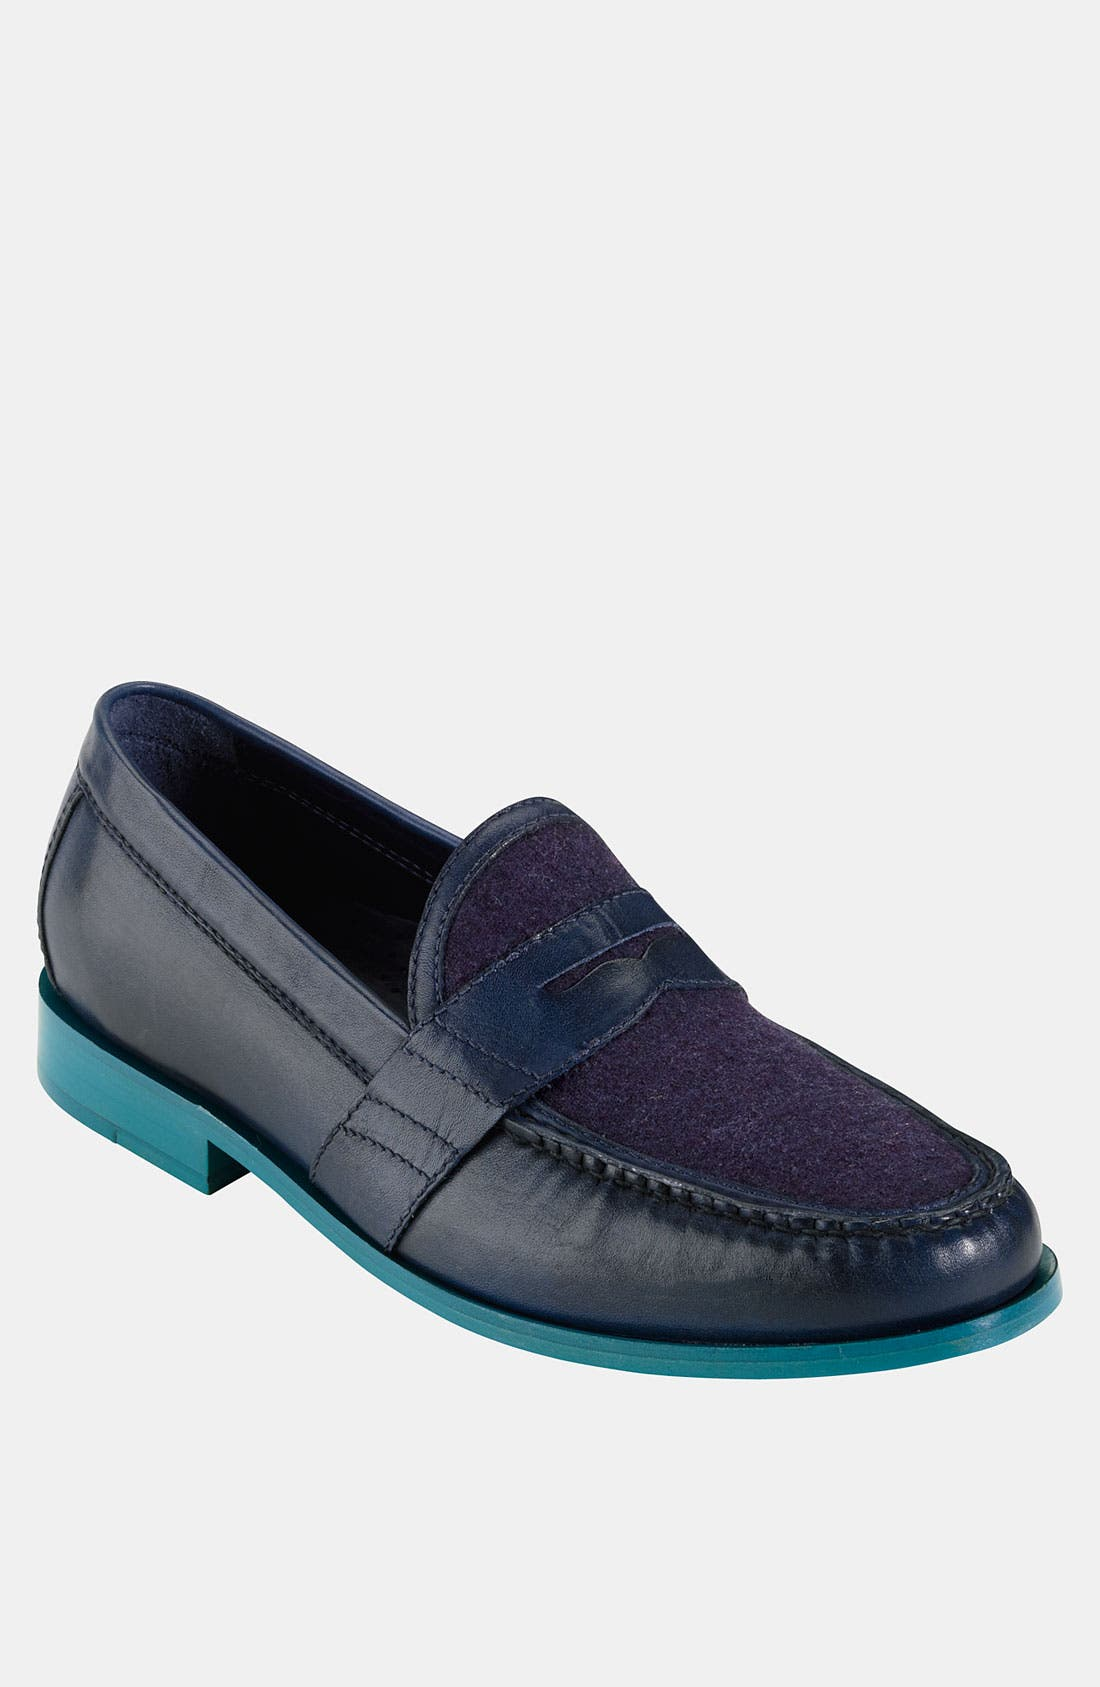 Alternate Image 1 Selected - Cole Haan 'Air Monroe' Penny Loafer   (Men)